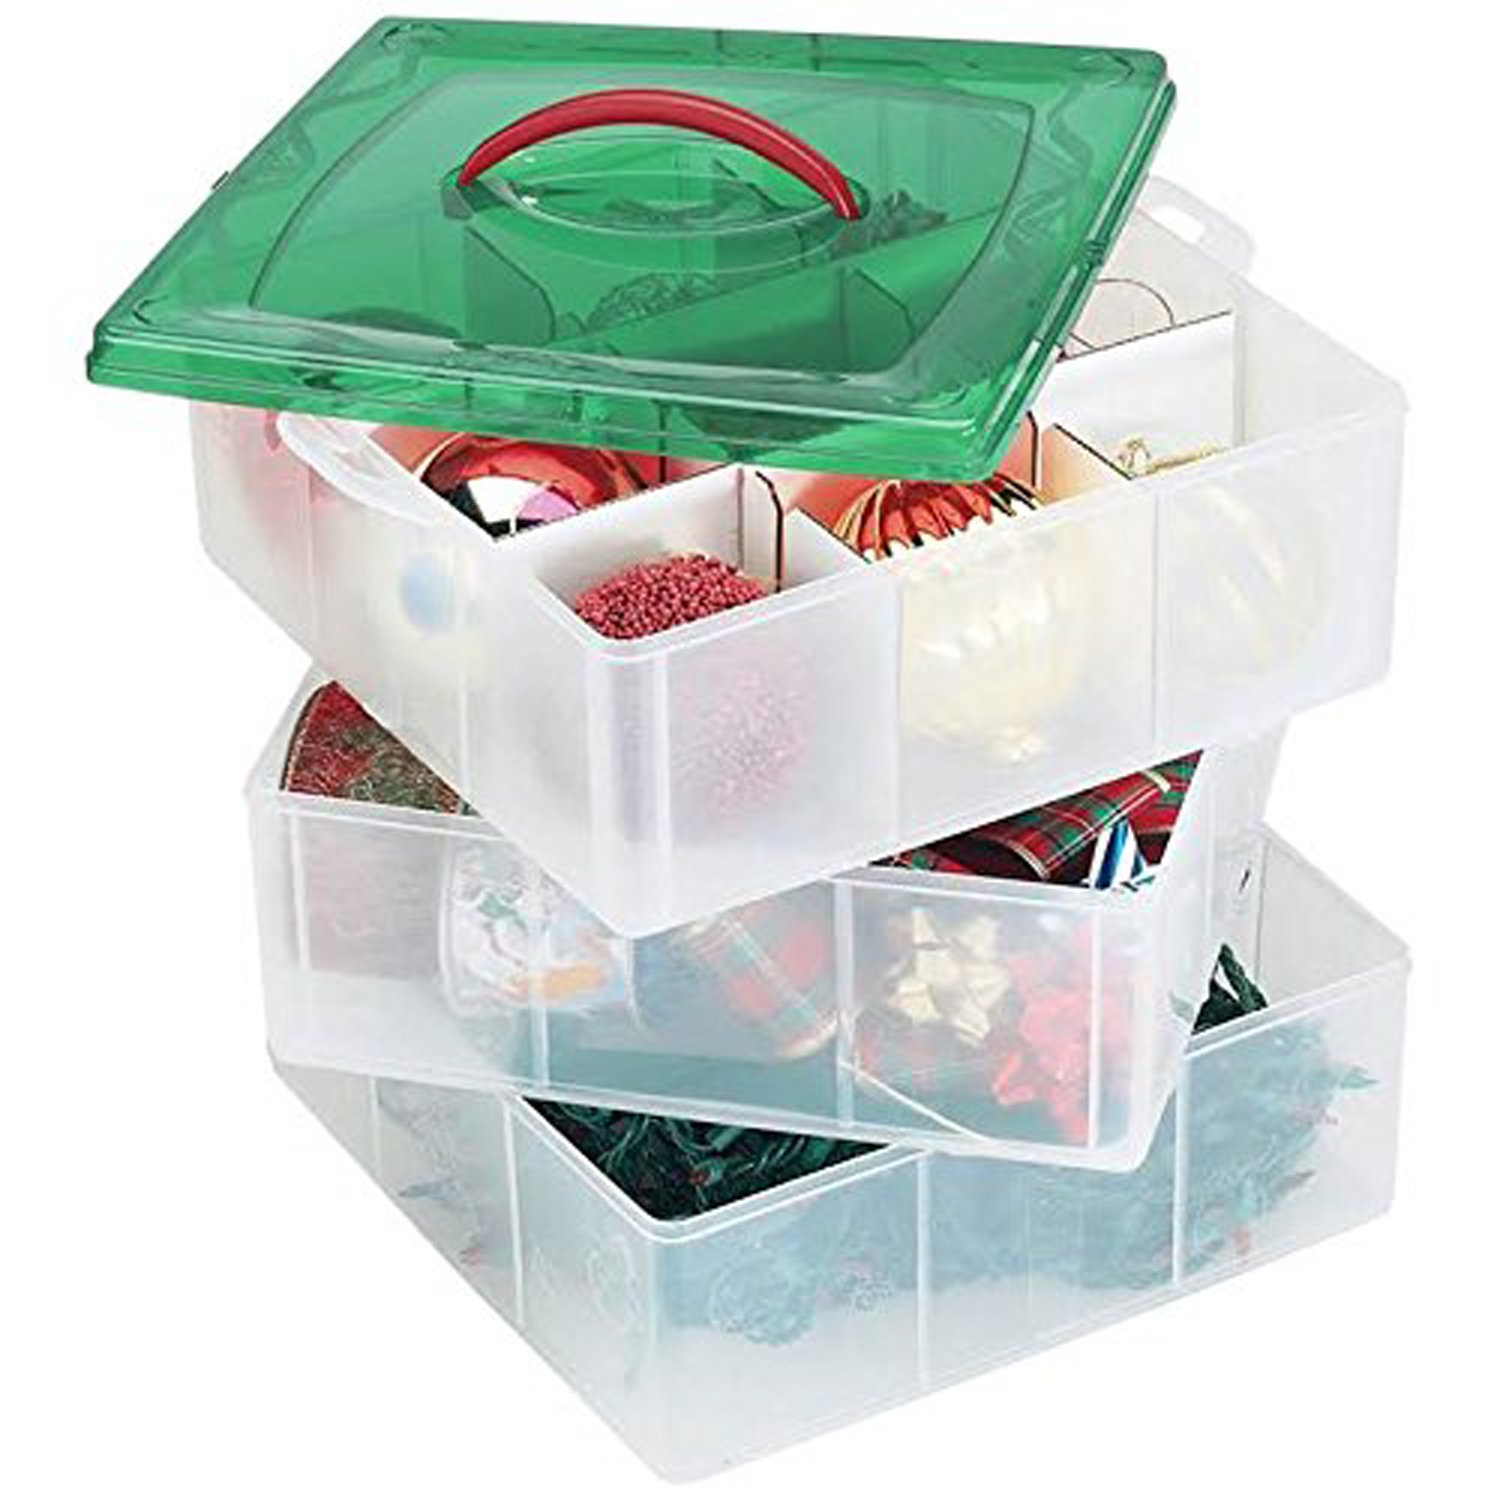 amazoncom christmas plastic ornament storage container 3 stackable snap together box trays bundled with ribbon container cloth home kitchen